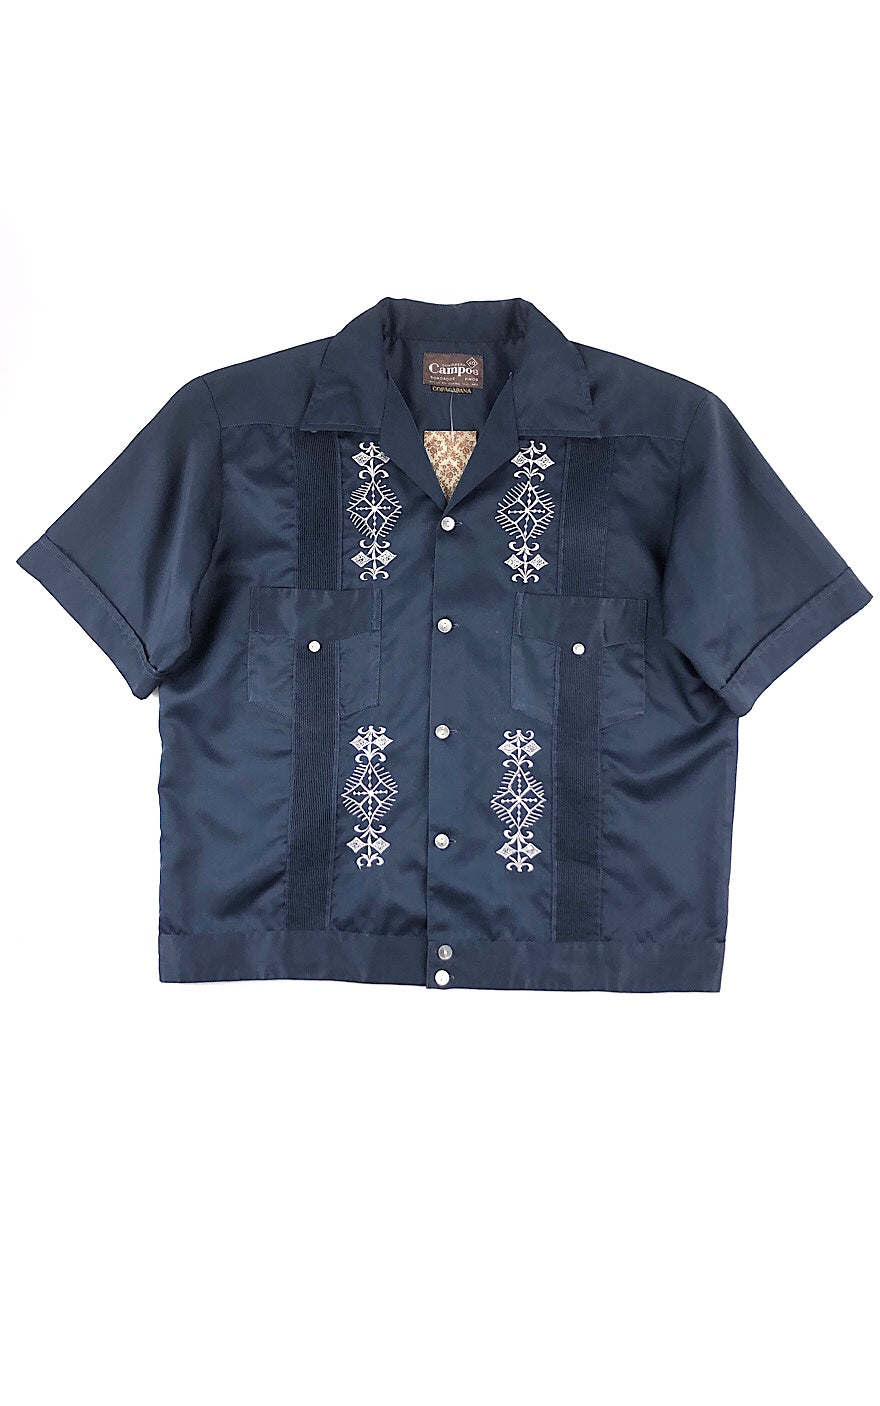 Dressy Casual Short Sleeve Button Up Shirt